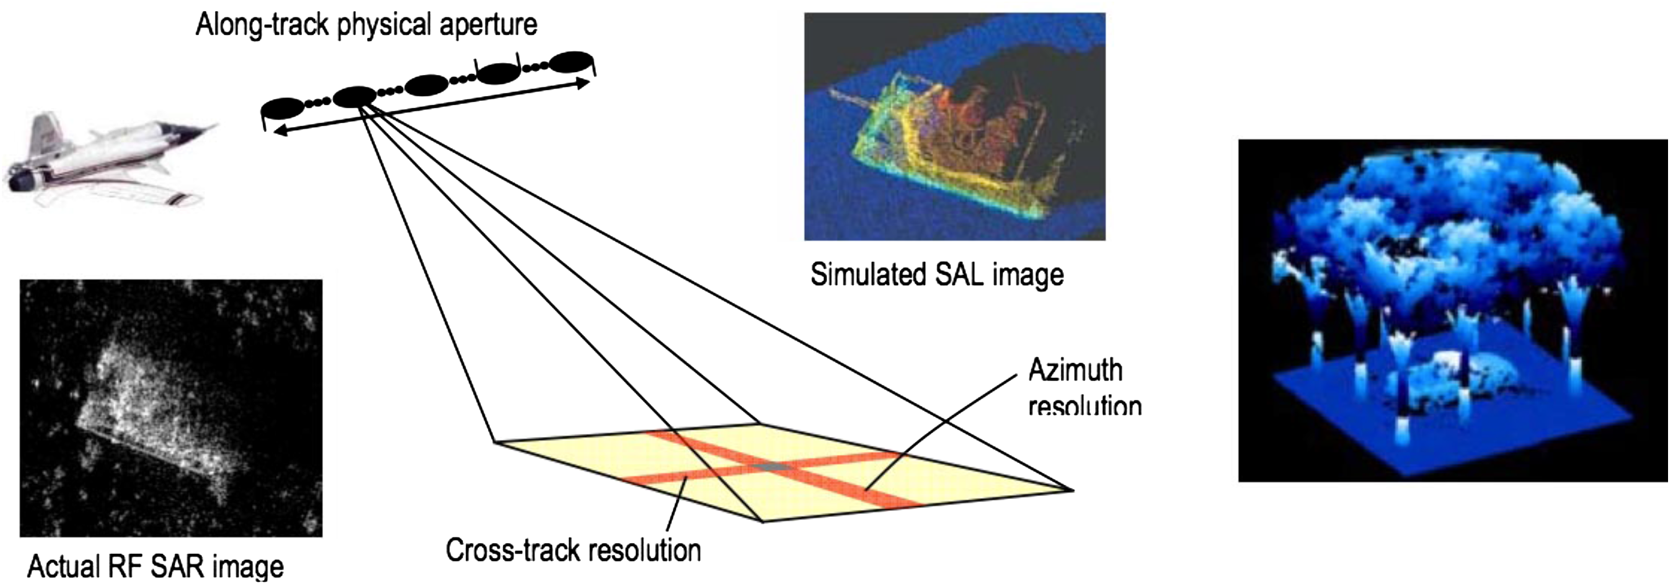 Laser Radar Historical Prospectivefrom The East To West Com O View Topic Hayabusa Wiring Diagram 2005 2006 Modifications Left Principles Of Sal Right Processed Data Observing A Truck Through Foliage Information From Four Separate Views Is Combined In This Image